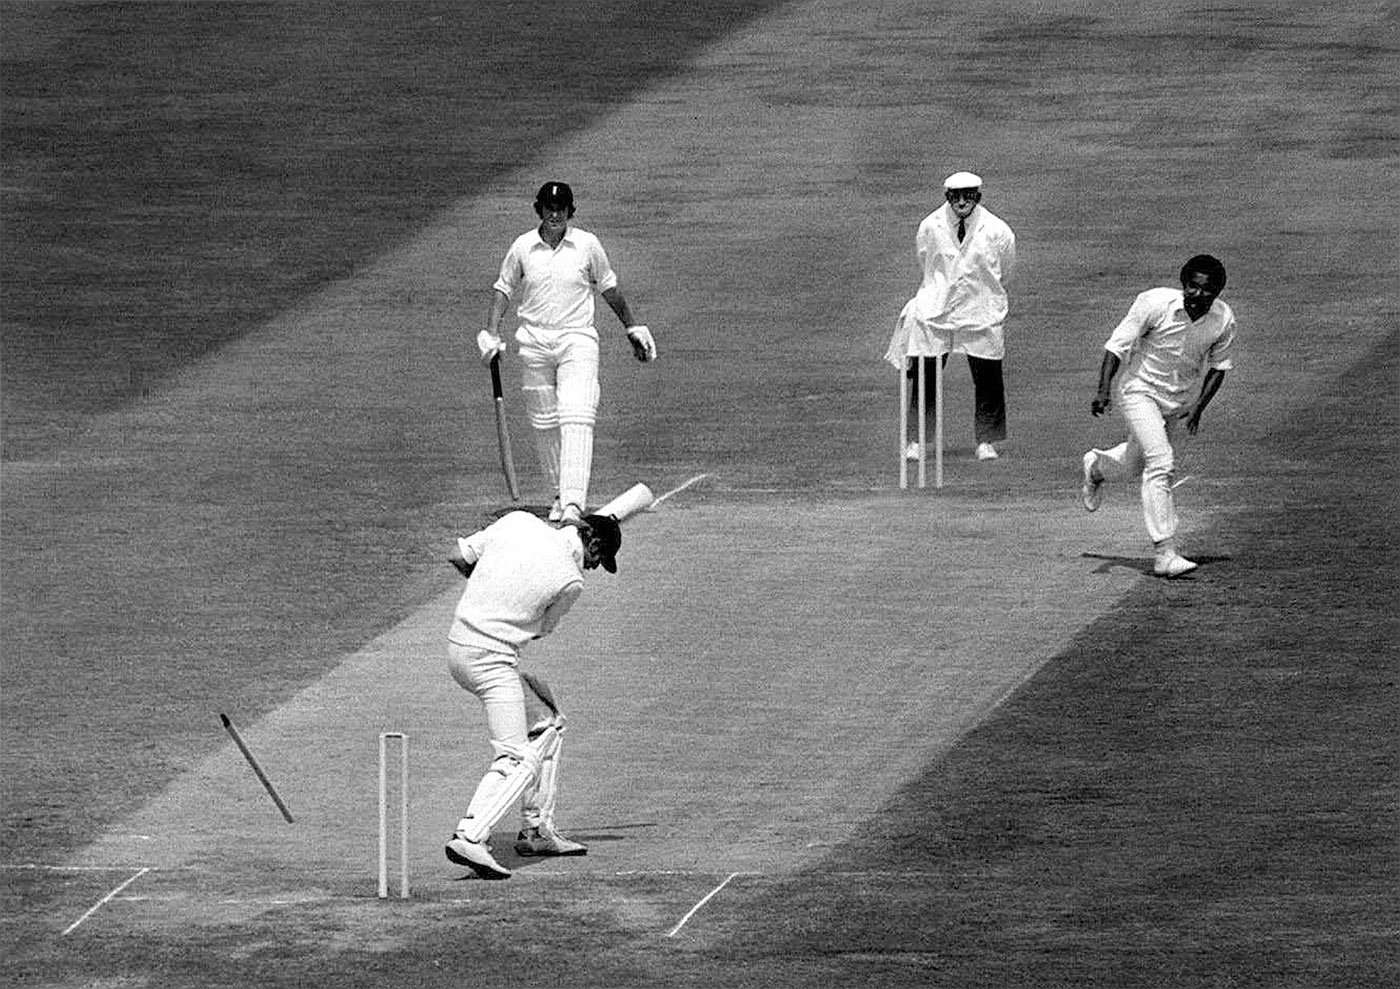 Tony Greig has his timbers shivered at Trent Bridge in 1976